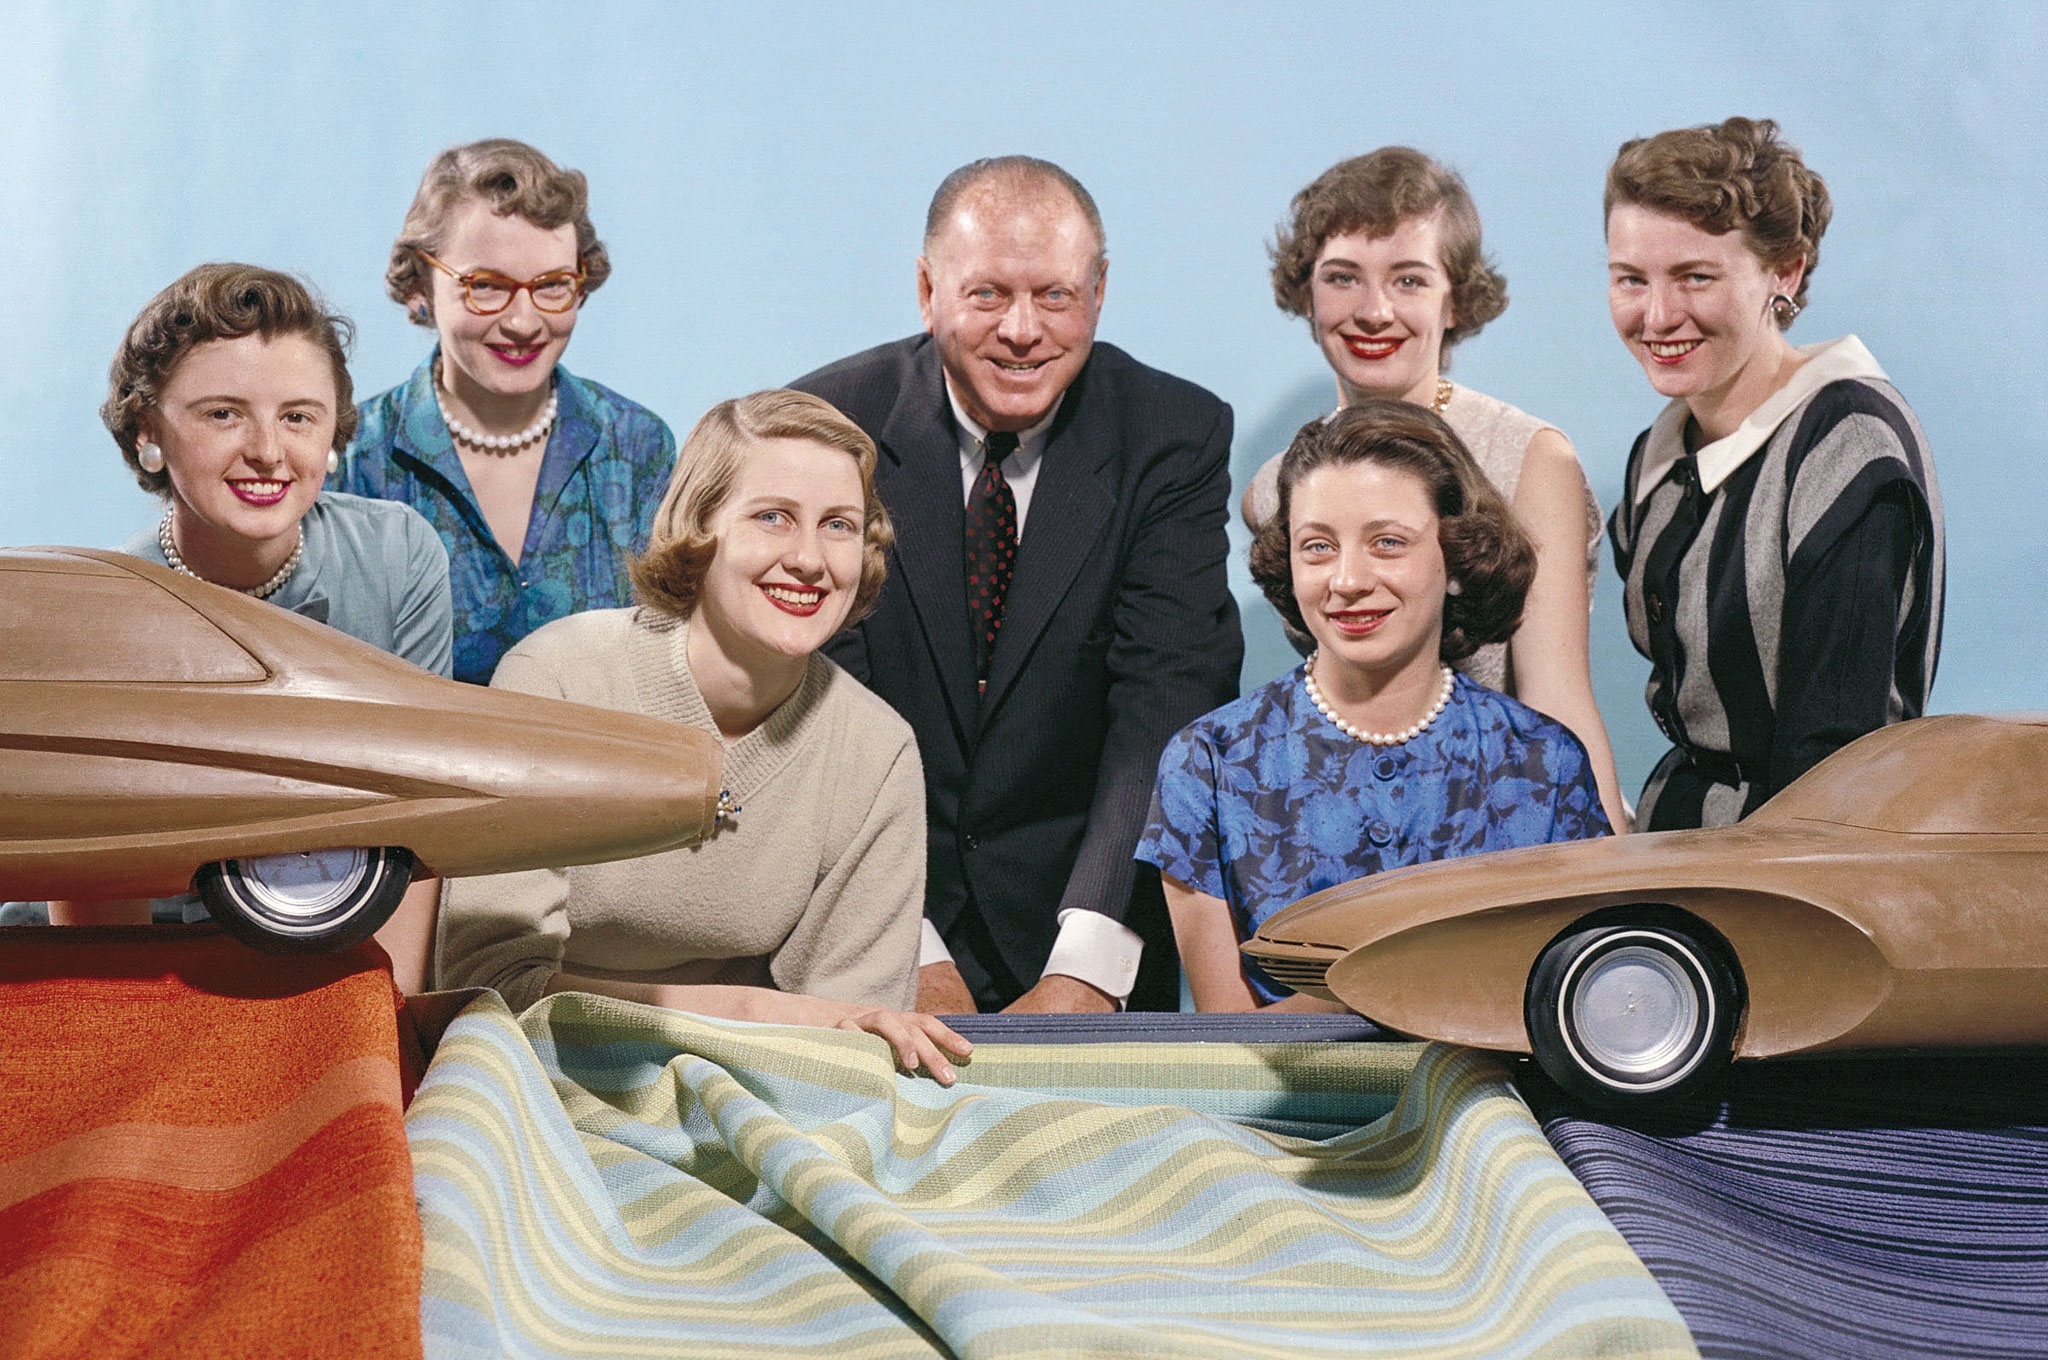 GM designers, clockwise from left, Sue Vanderbilt, Ruth Glennie, styling chief Harley Earl, Jeanette Linder, Peggy Sauer, Sandra Longyear, and Marjorie Ford Pohlman.